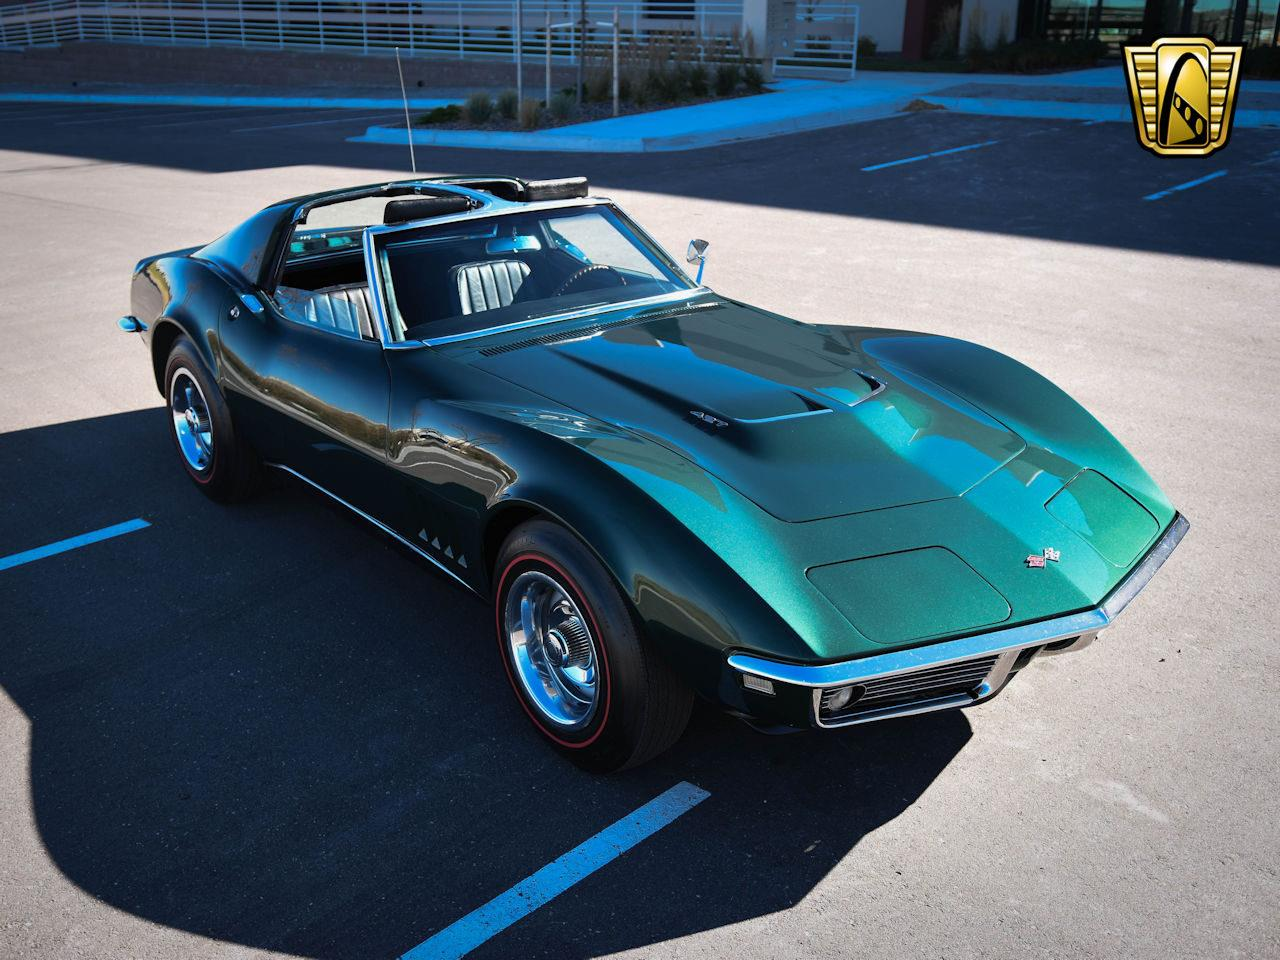 Large Picture of Classic '68 Chevrolet Corvette located in O'Fallon Illinois Offered by Gateway Classic Cars - Denver - M9KE